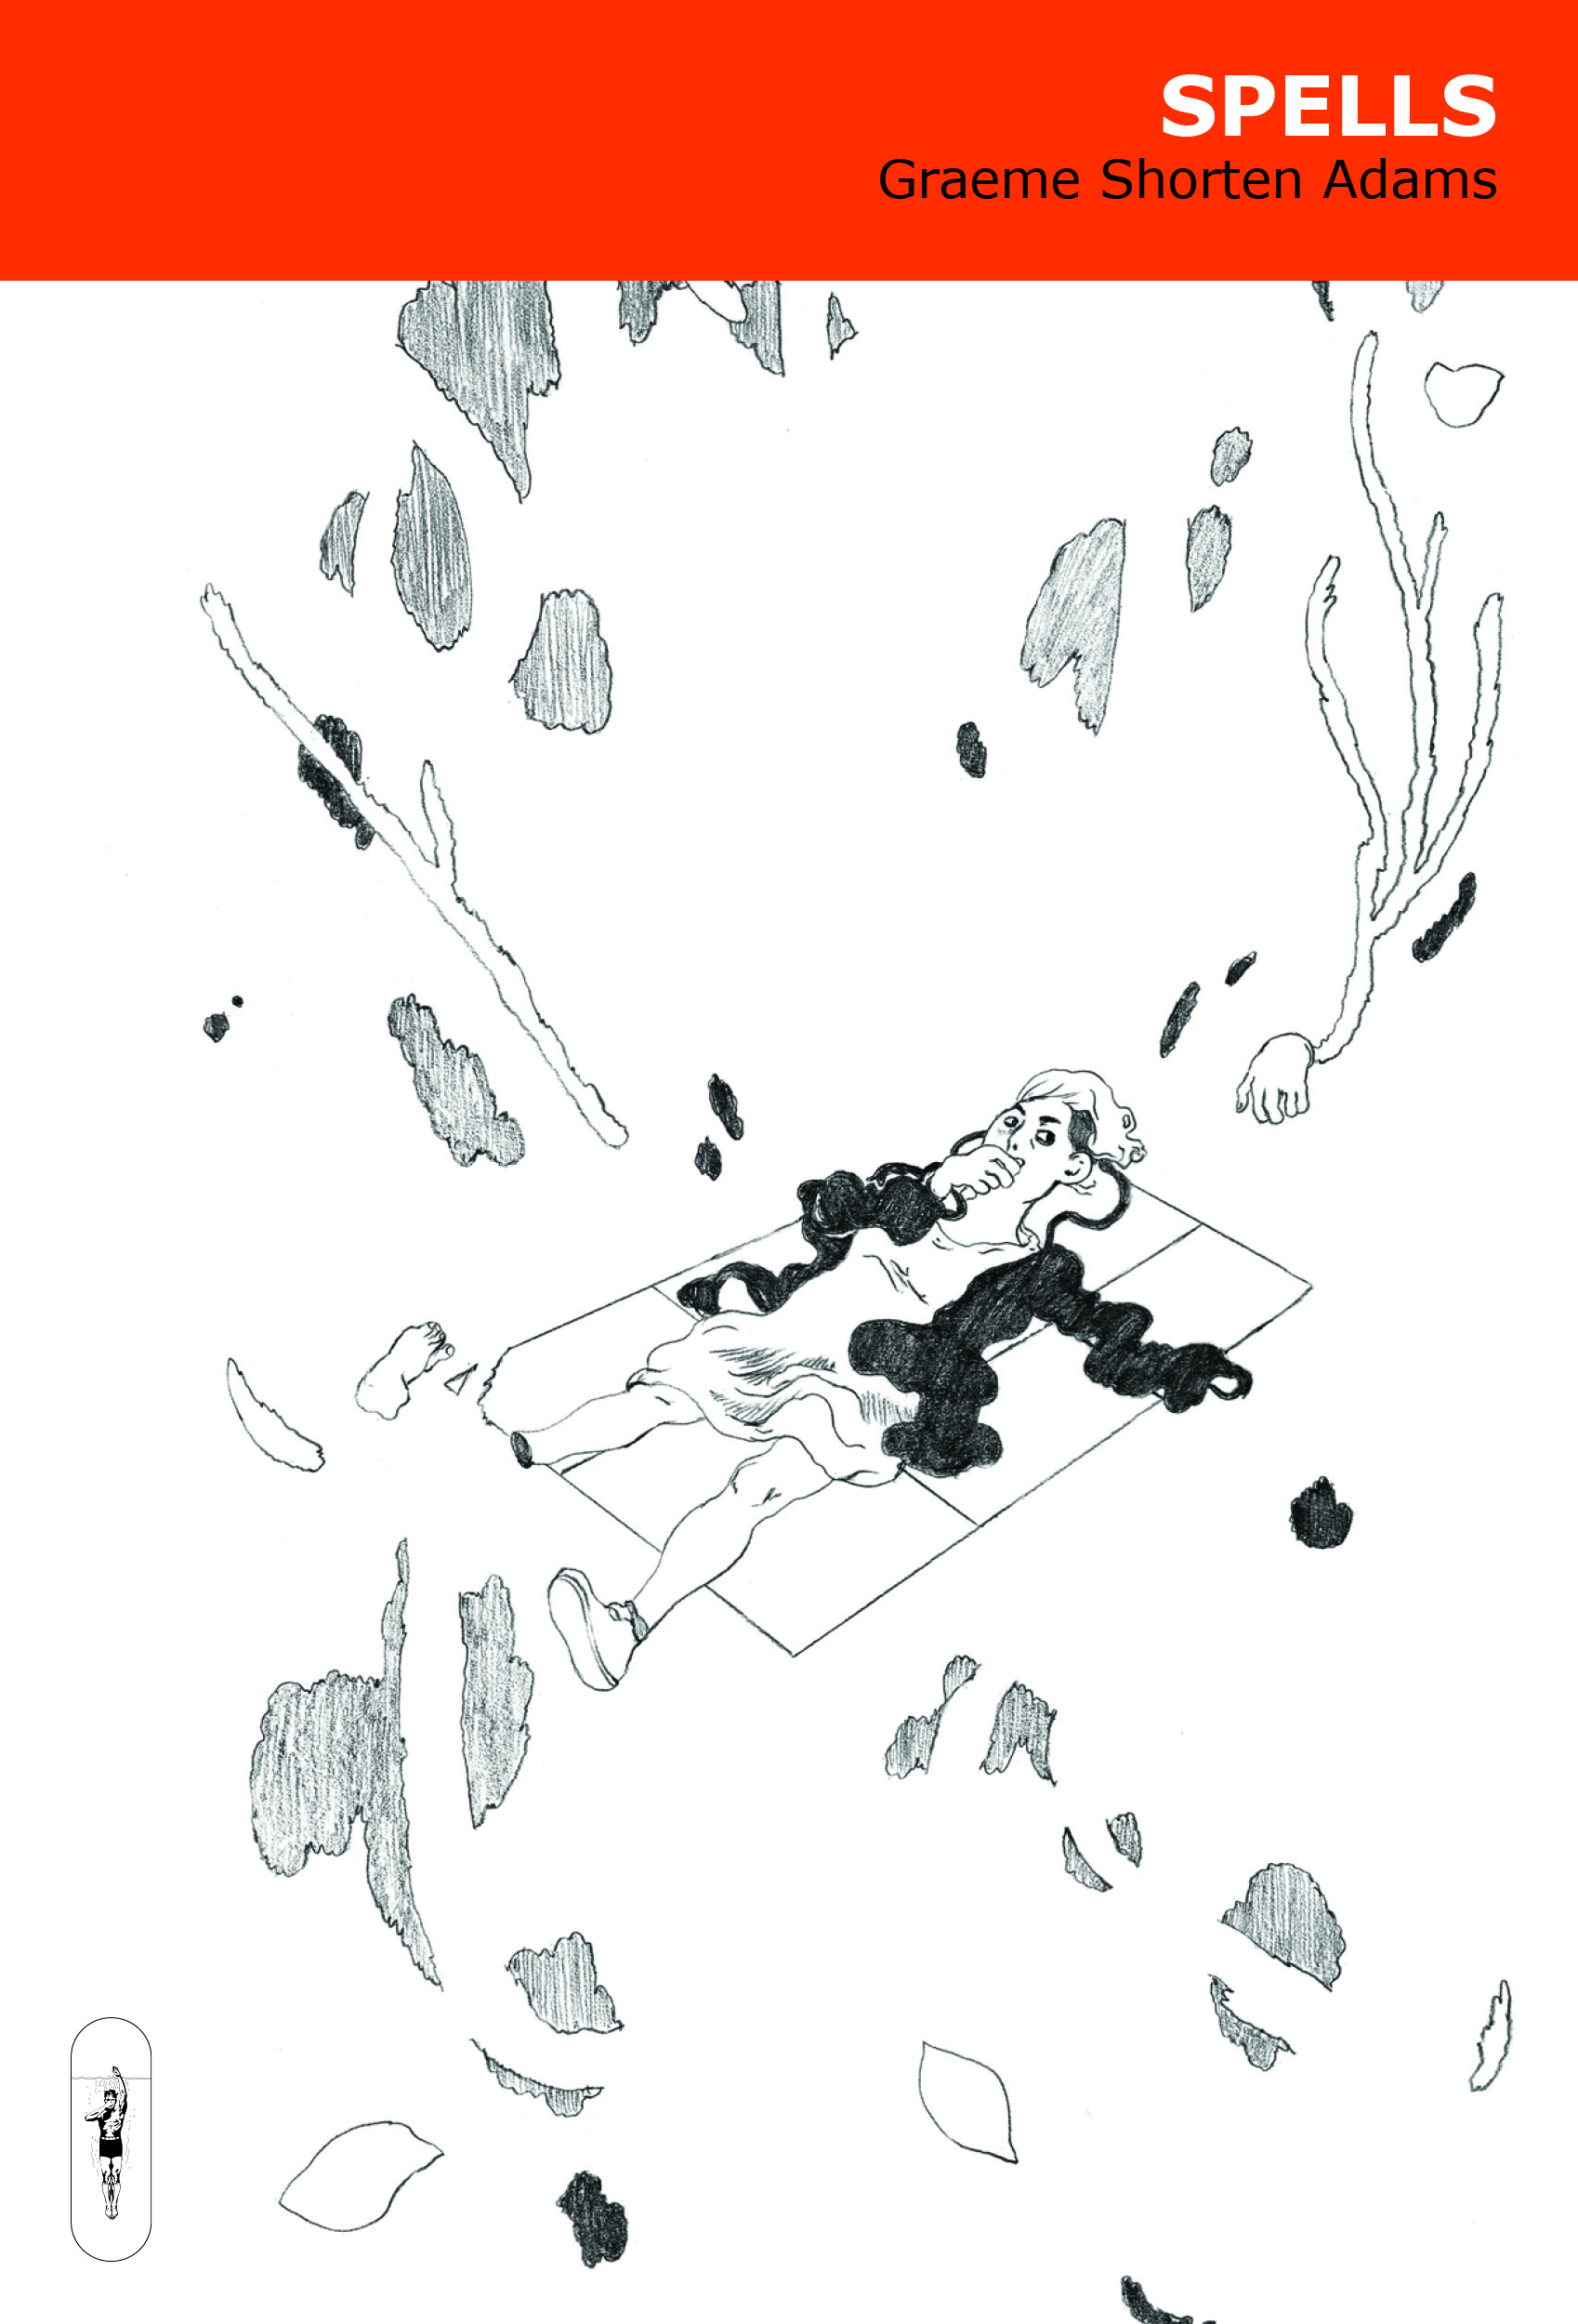 A person lies on a floating platform, with indiscernible objects floating around them. Text: Spells by Graeme Shorten Adams